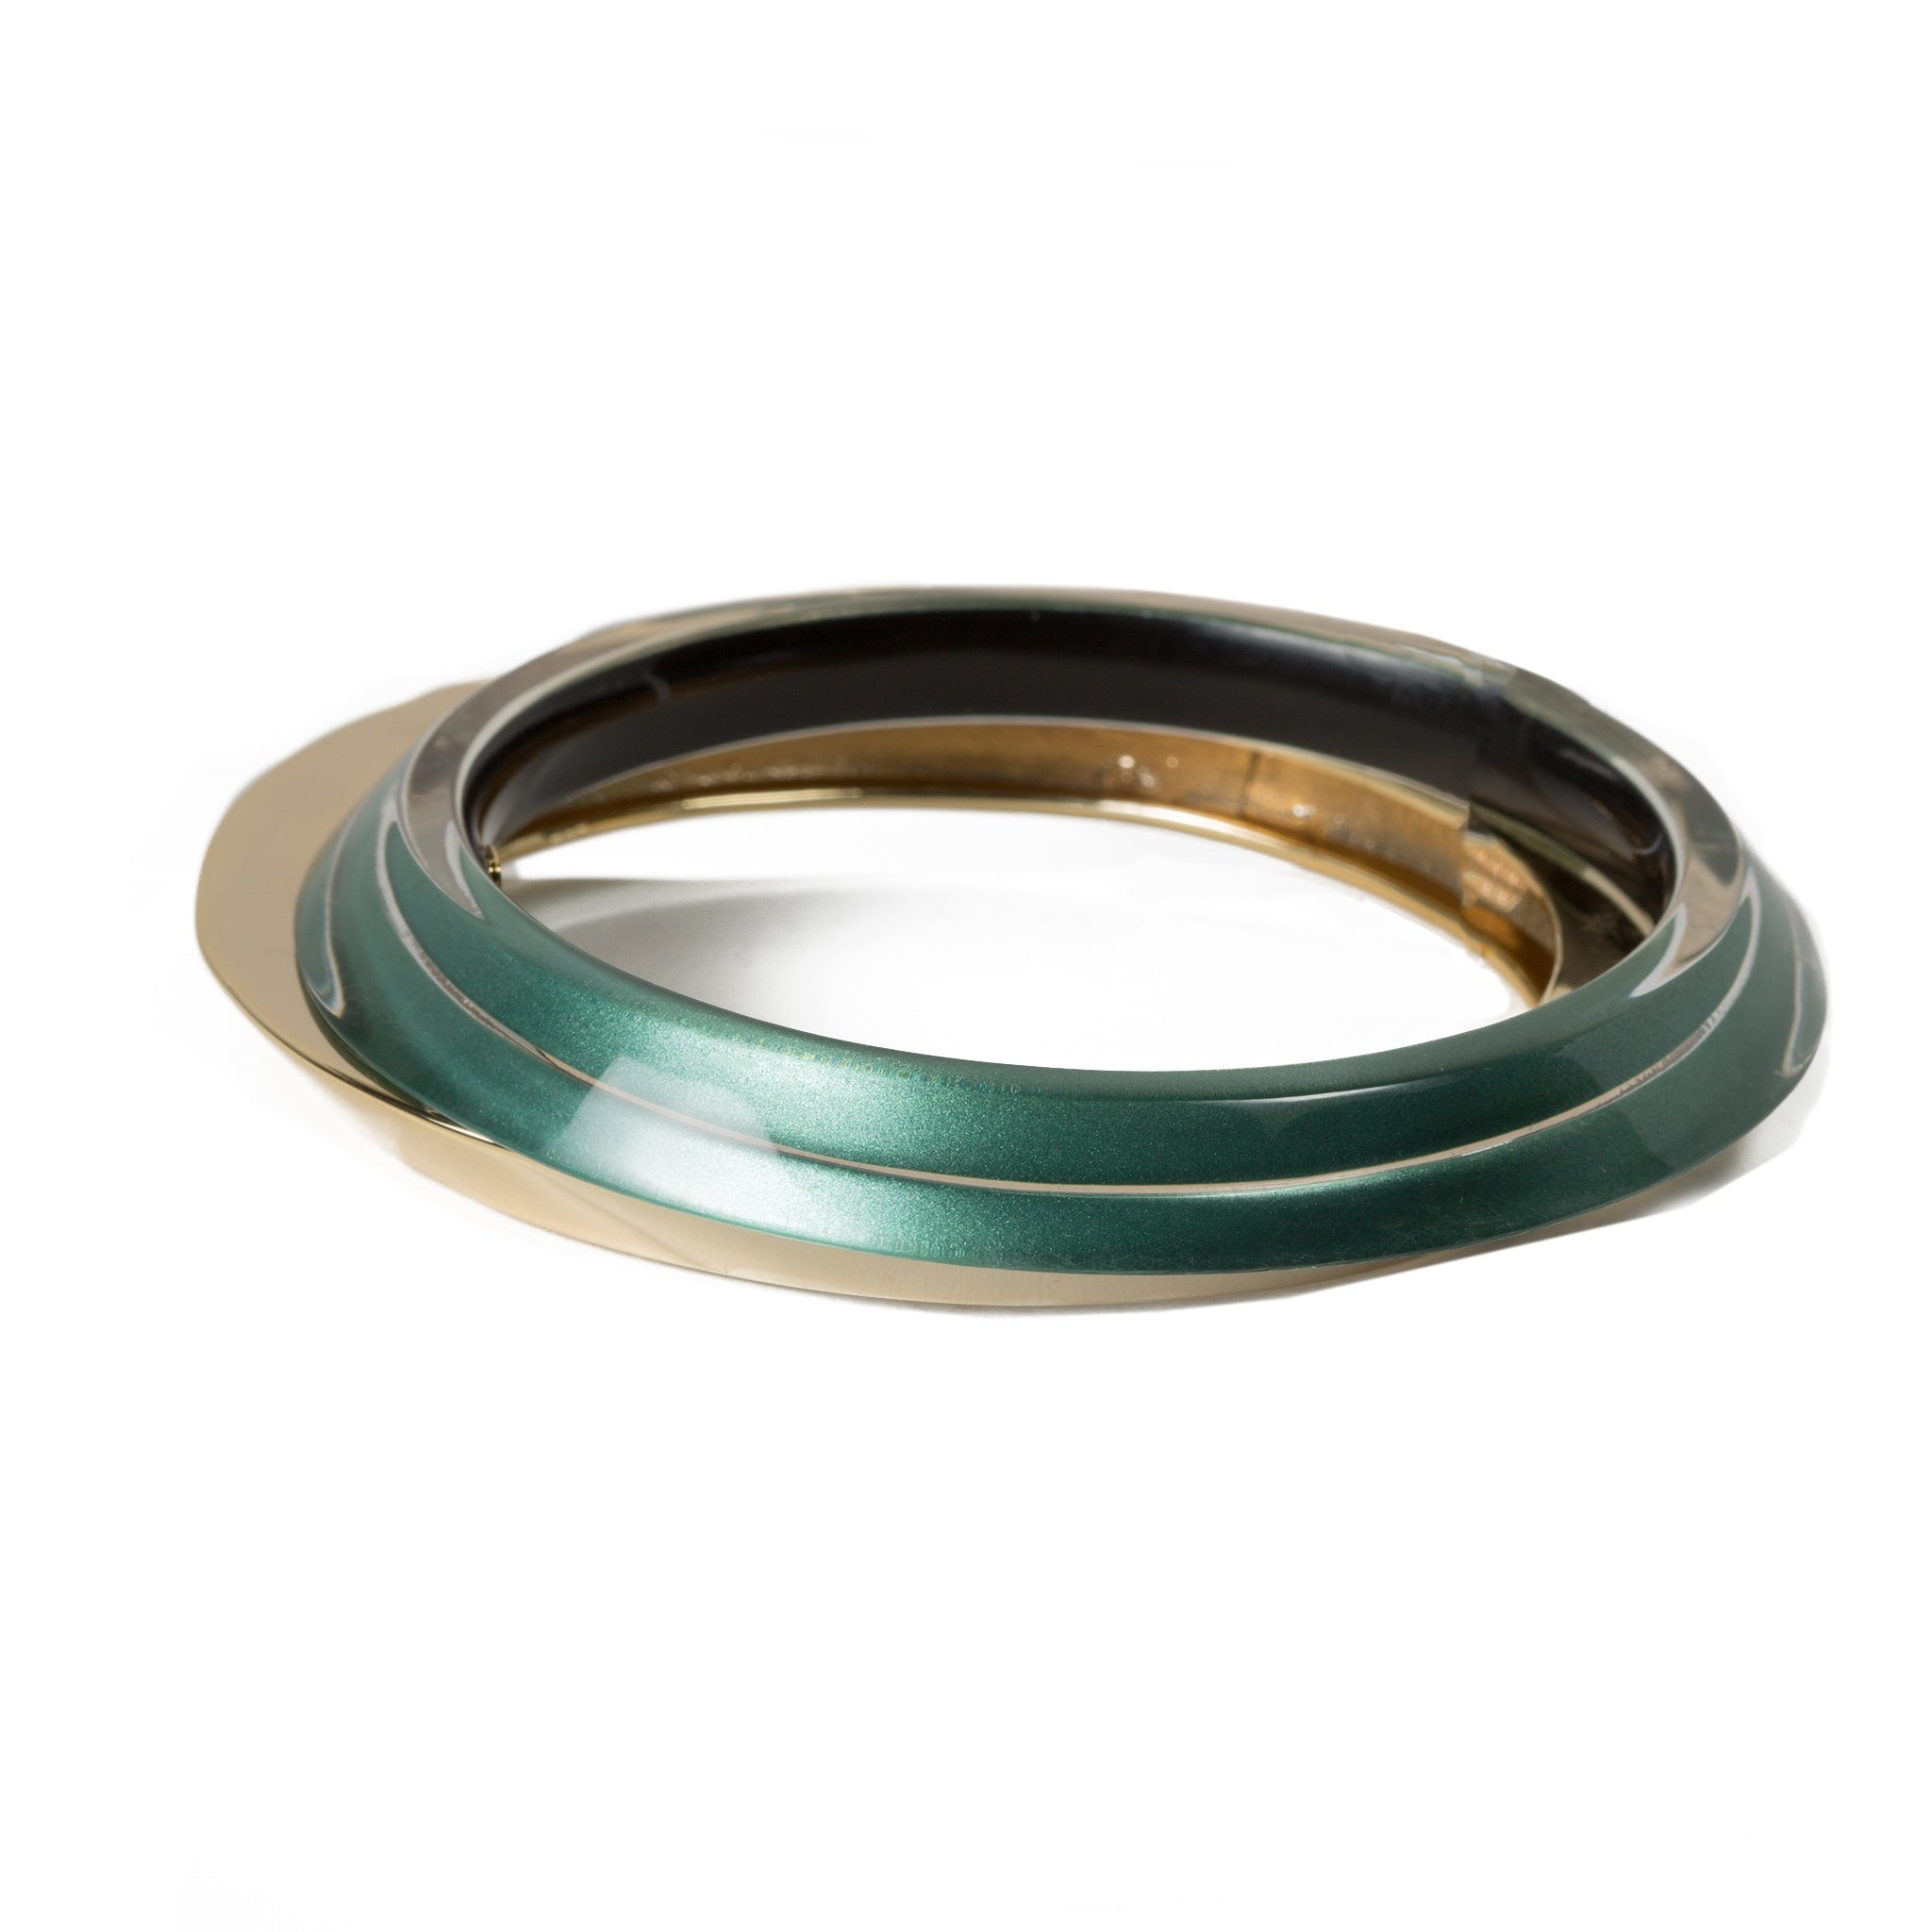 Angled Set Metallic Teal Bangle Bracelet